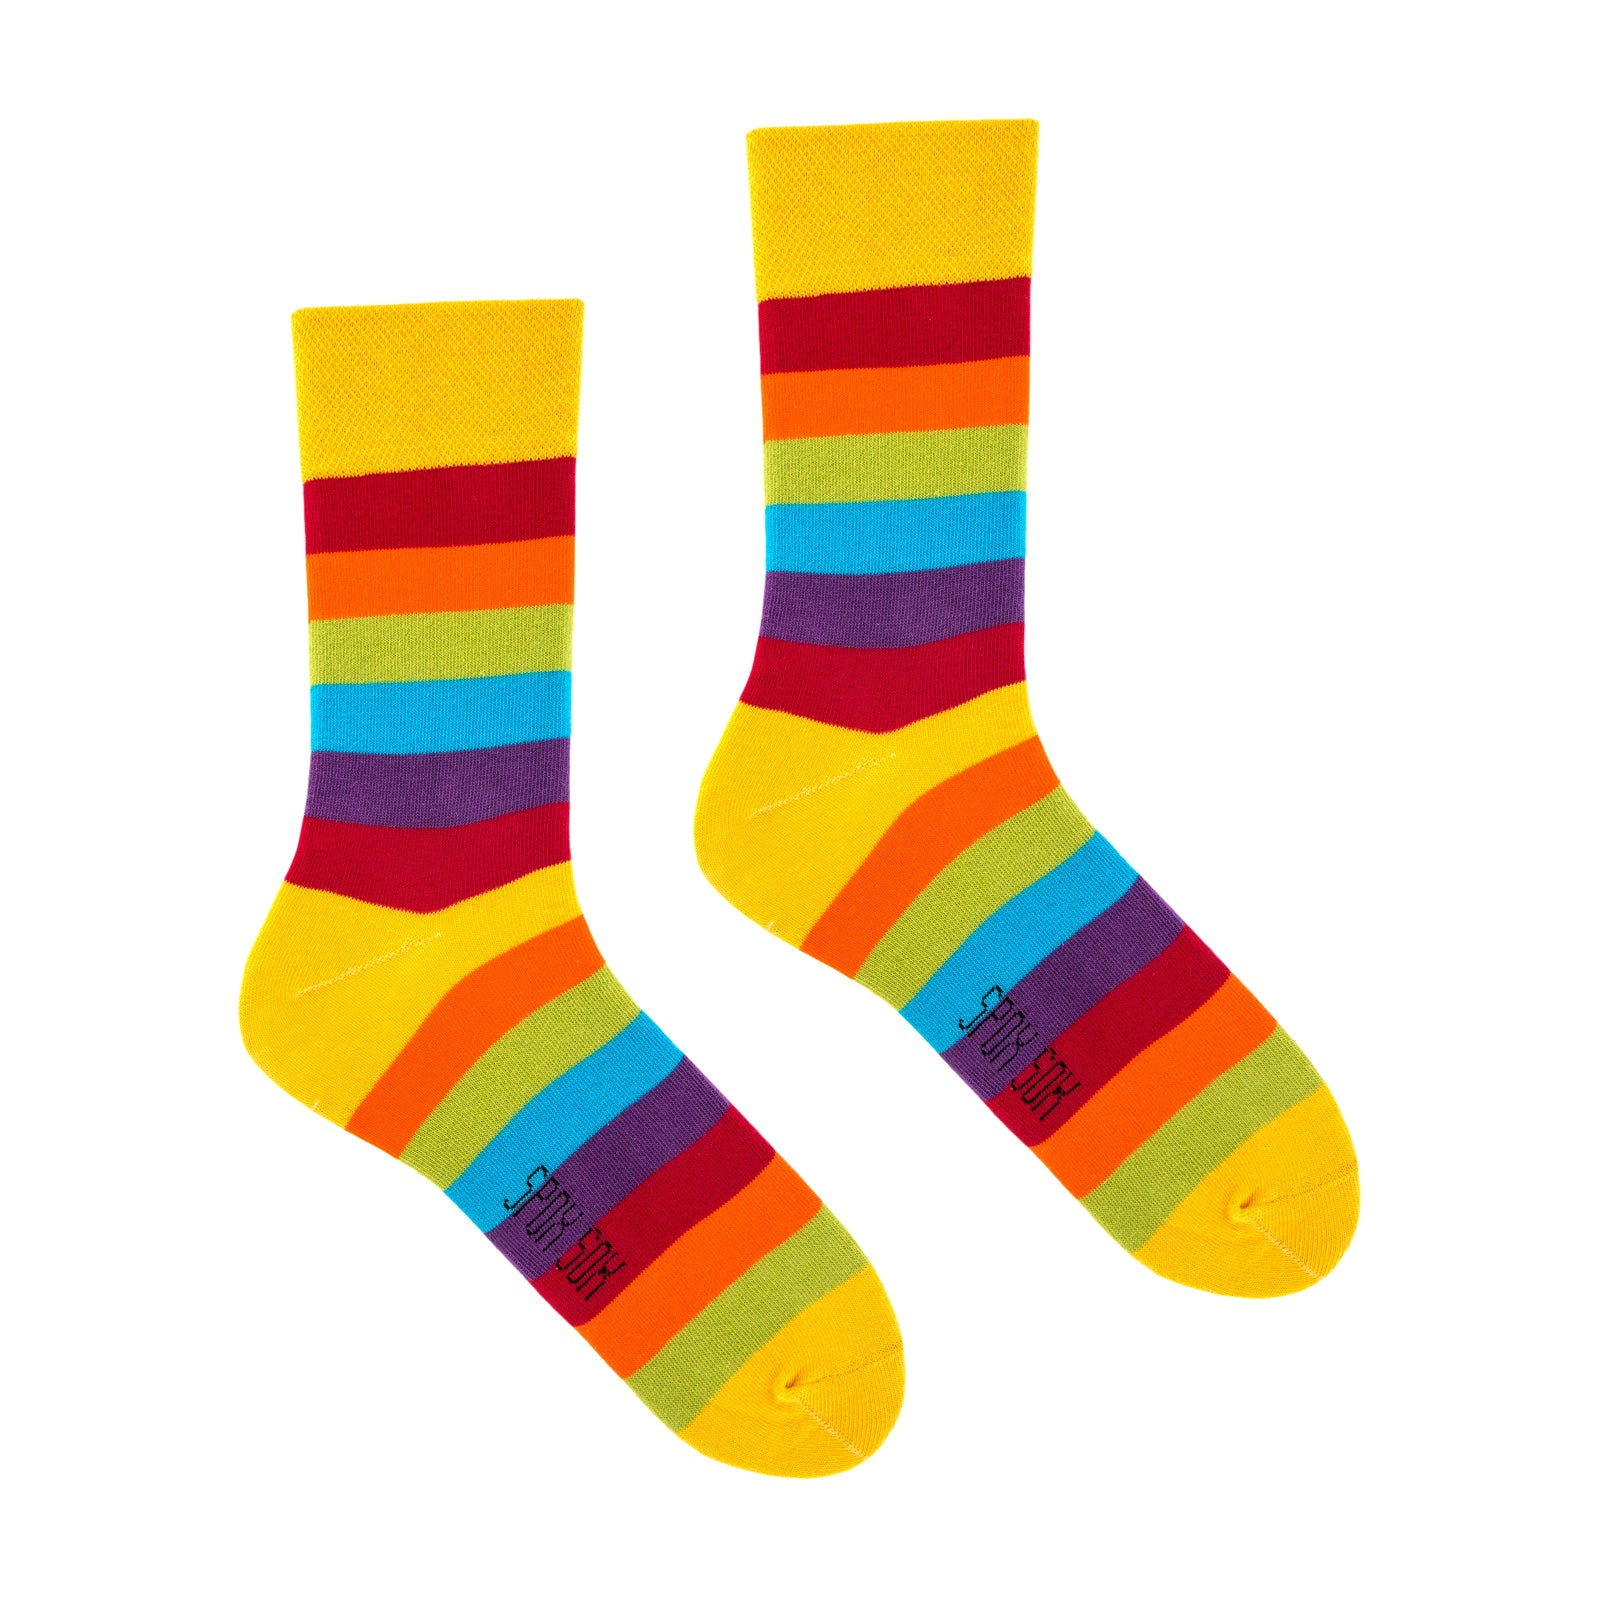 Rainbow | Colourful Funny Socks | King Stone | Canada | SpoxSox | Spox Sox